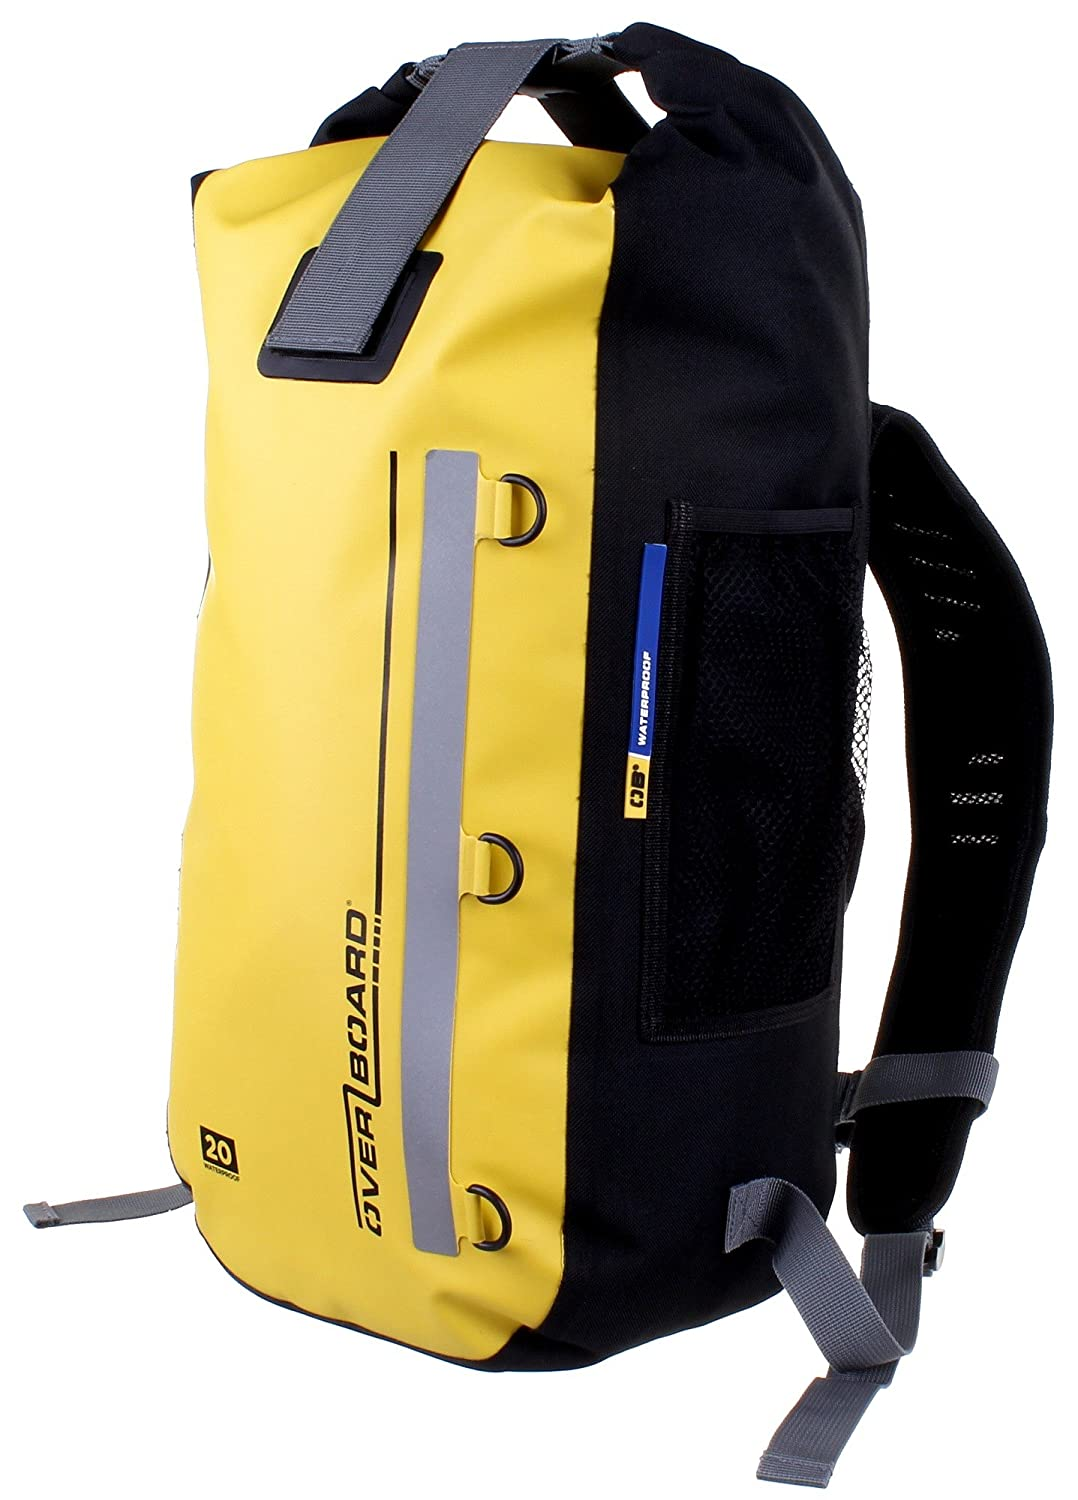 Overboard Classic Waterproof Dry Bag Backpack: Amazon.co.uk ...